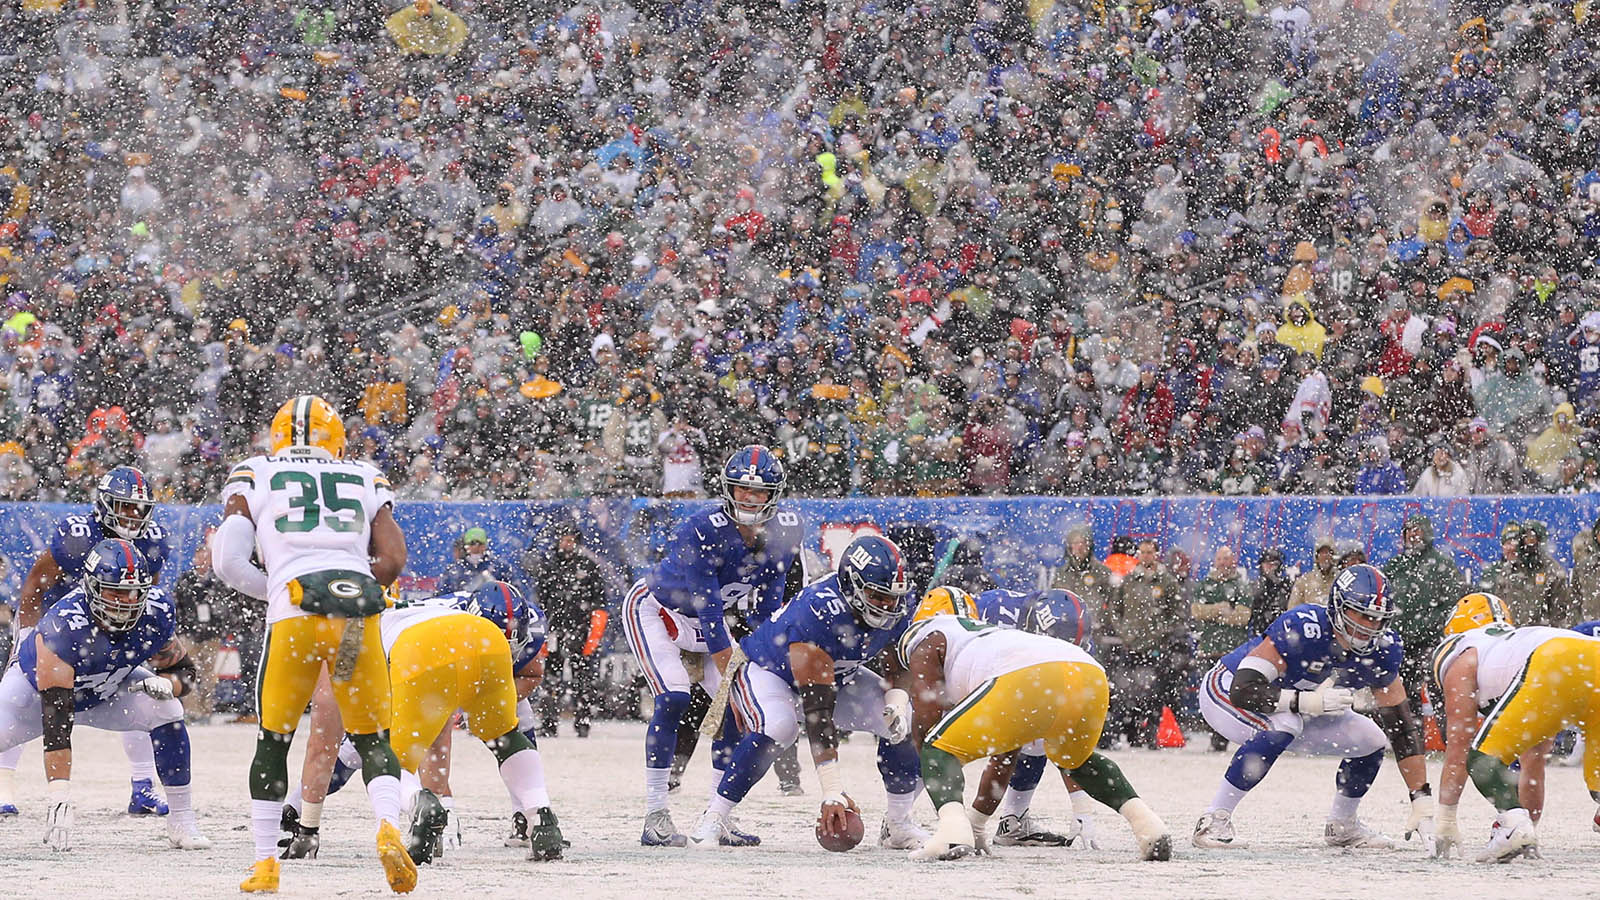 Dec 1, 2019; East Rutherford, NJ, USA; New York Giants quarterback Daniel Jones (8) takes a snap against the Green Bay Packers during the first quarter at MetLife Stadium. Mandatory Credit: Brad Penner-USA TODAY Sports